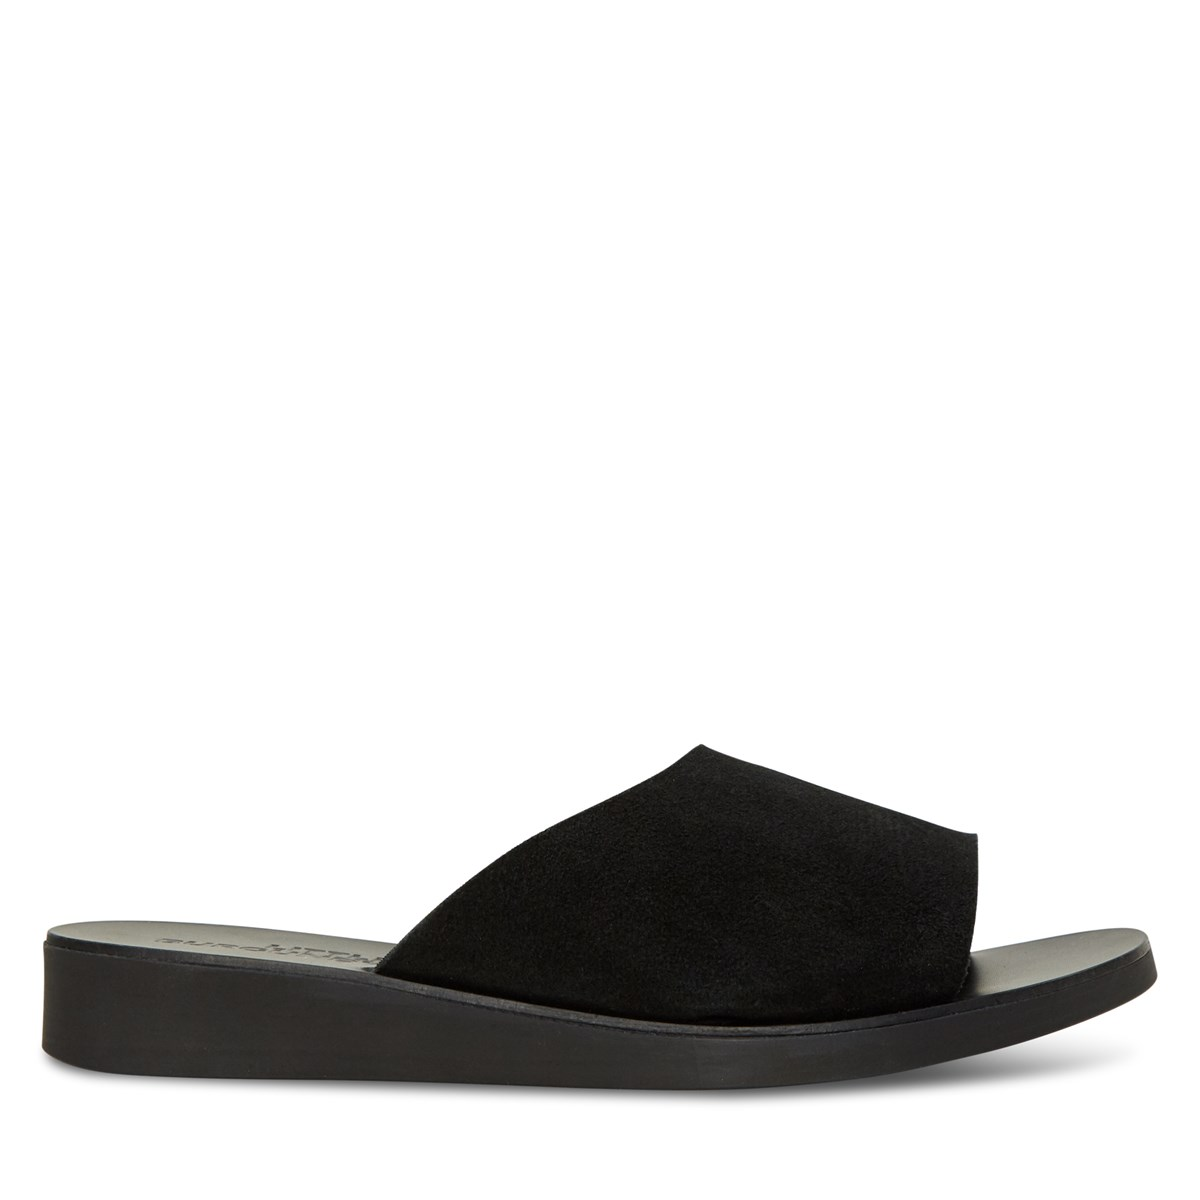 Women's Maeve Slide Sandals in Black